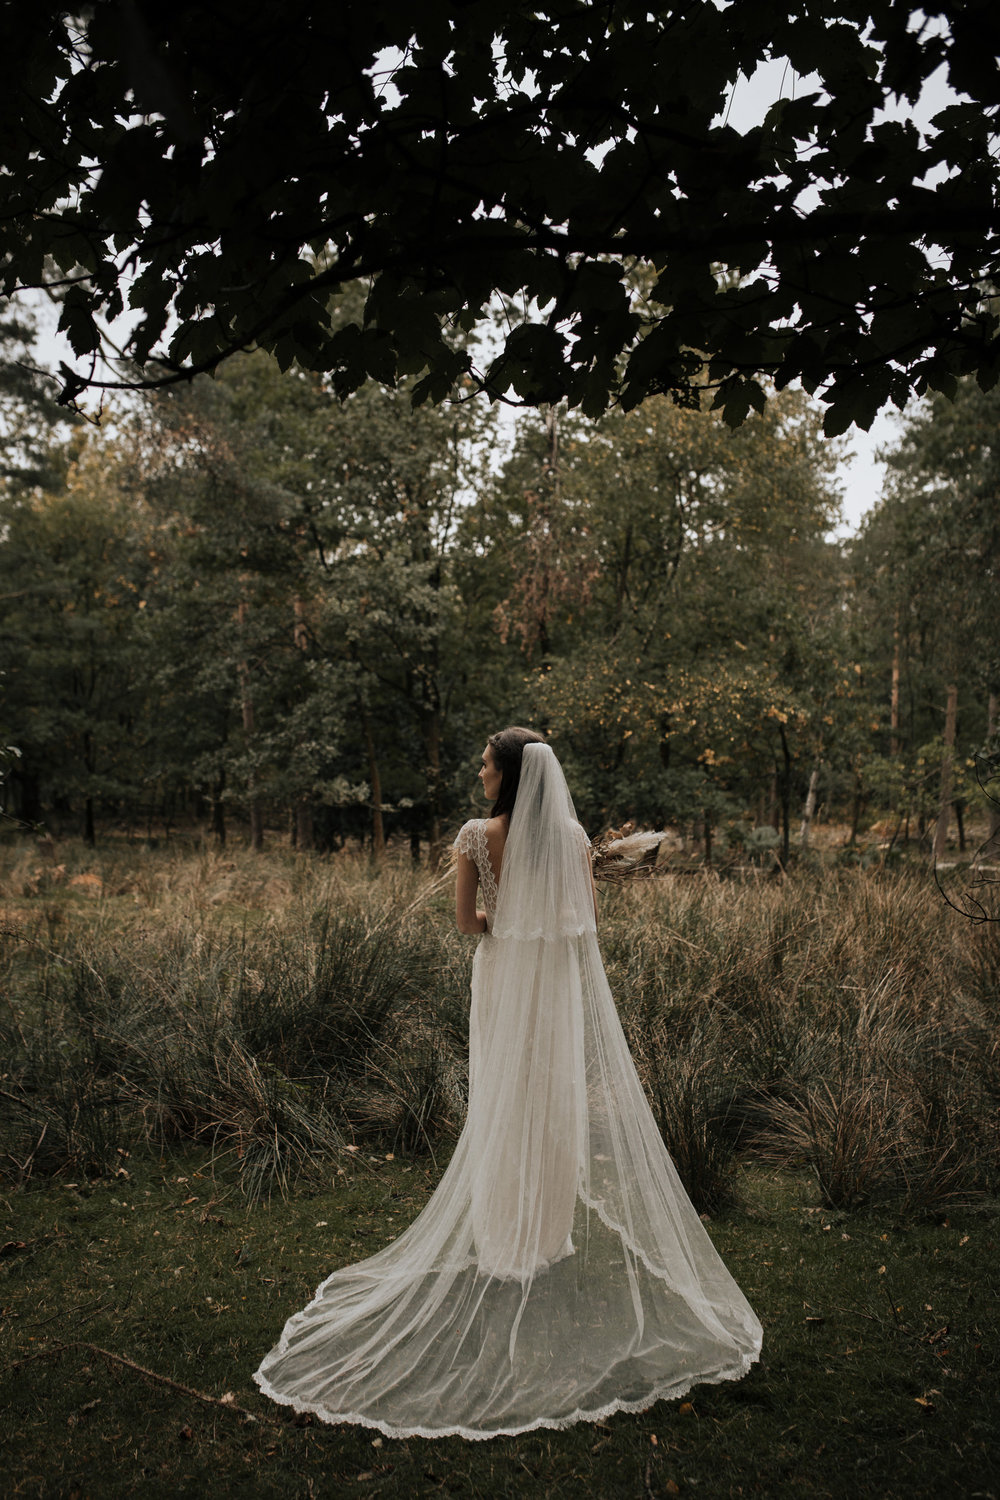 Joasia-Kate-Beaumont-Bohemian-Lace-Wedding-Dress-Peak-District-Sheffield-Wedding-40.jpg